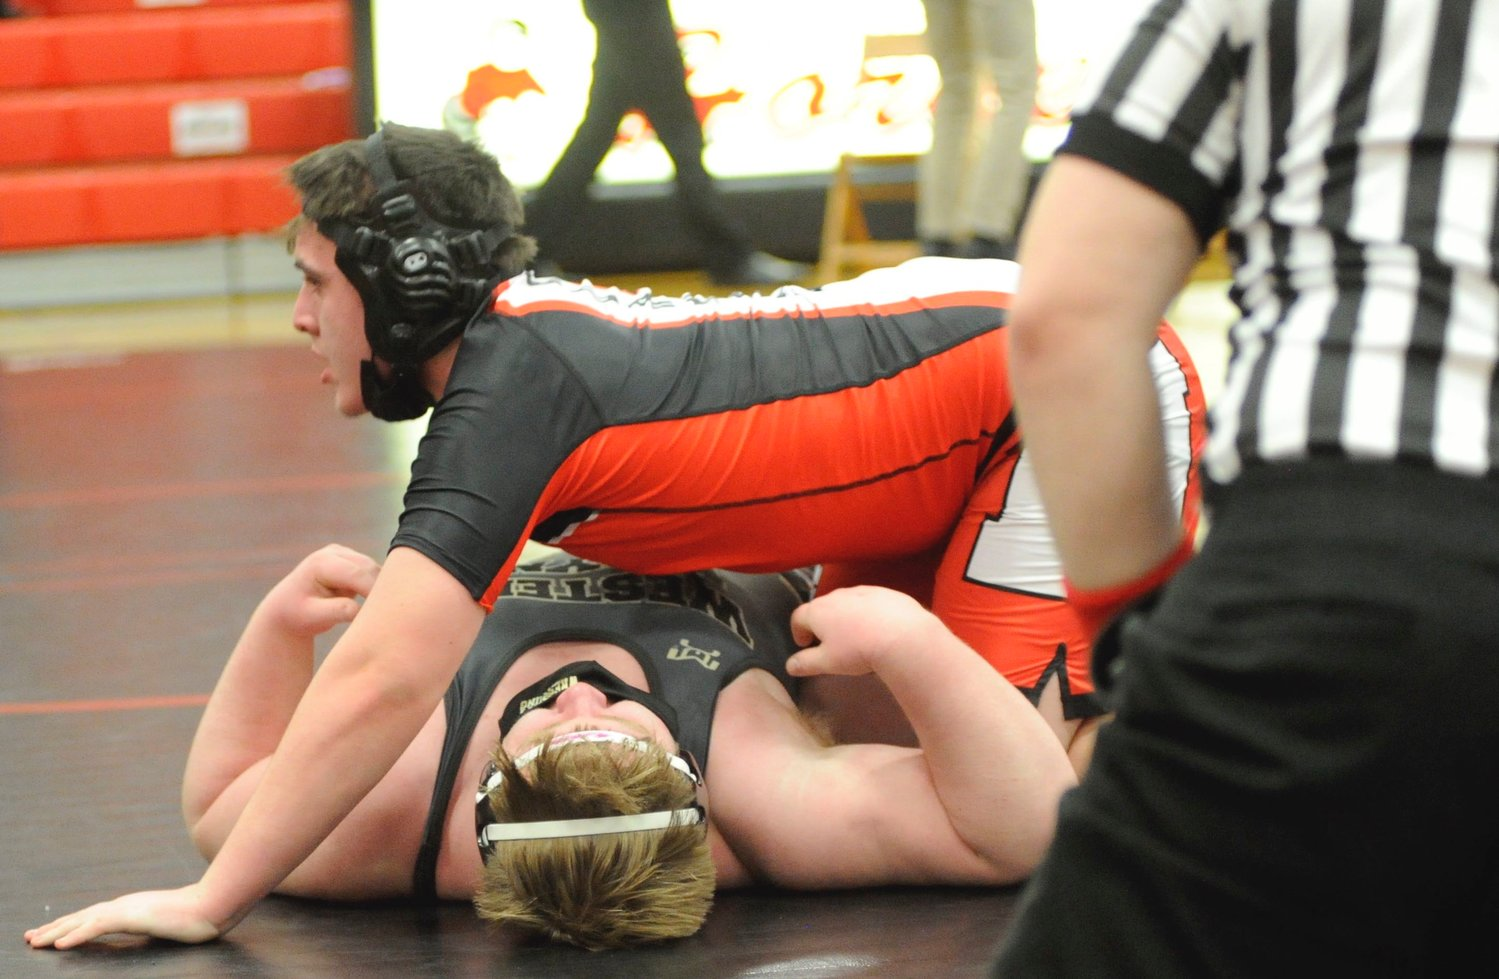 In bout #5, Honesdale's Arron Phillips defeated his opponent in the 285-pound weight class.